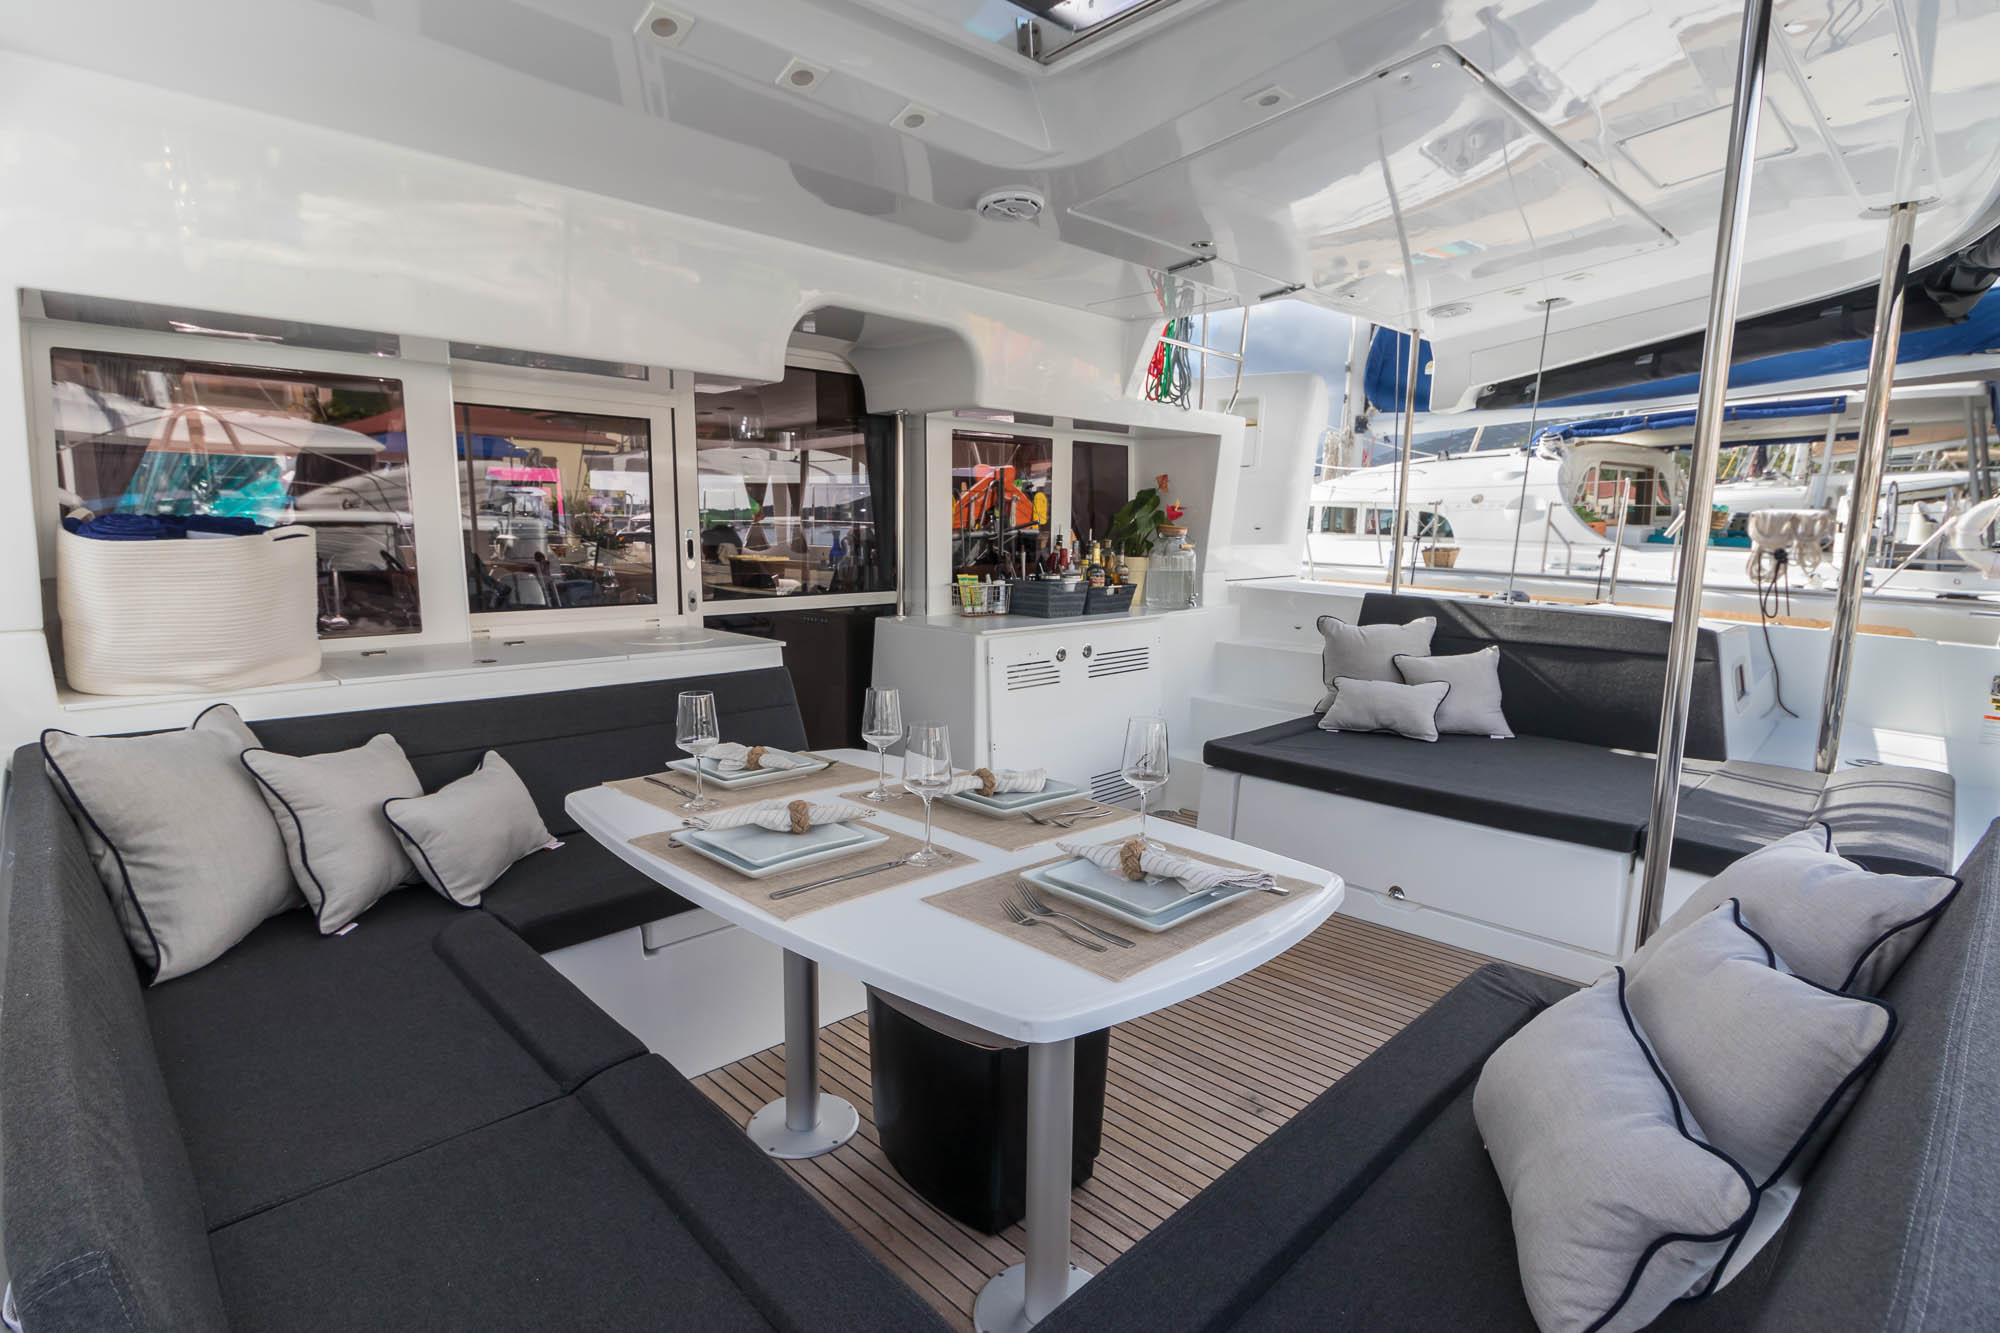 The Lagoon 450F utilizes its space very well by offering multiple lounge options as well as indoor and outdoor dining